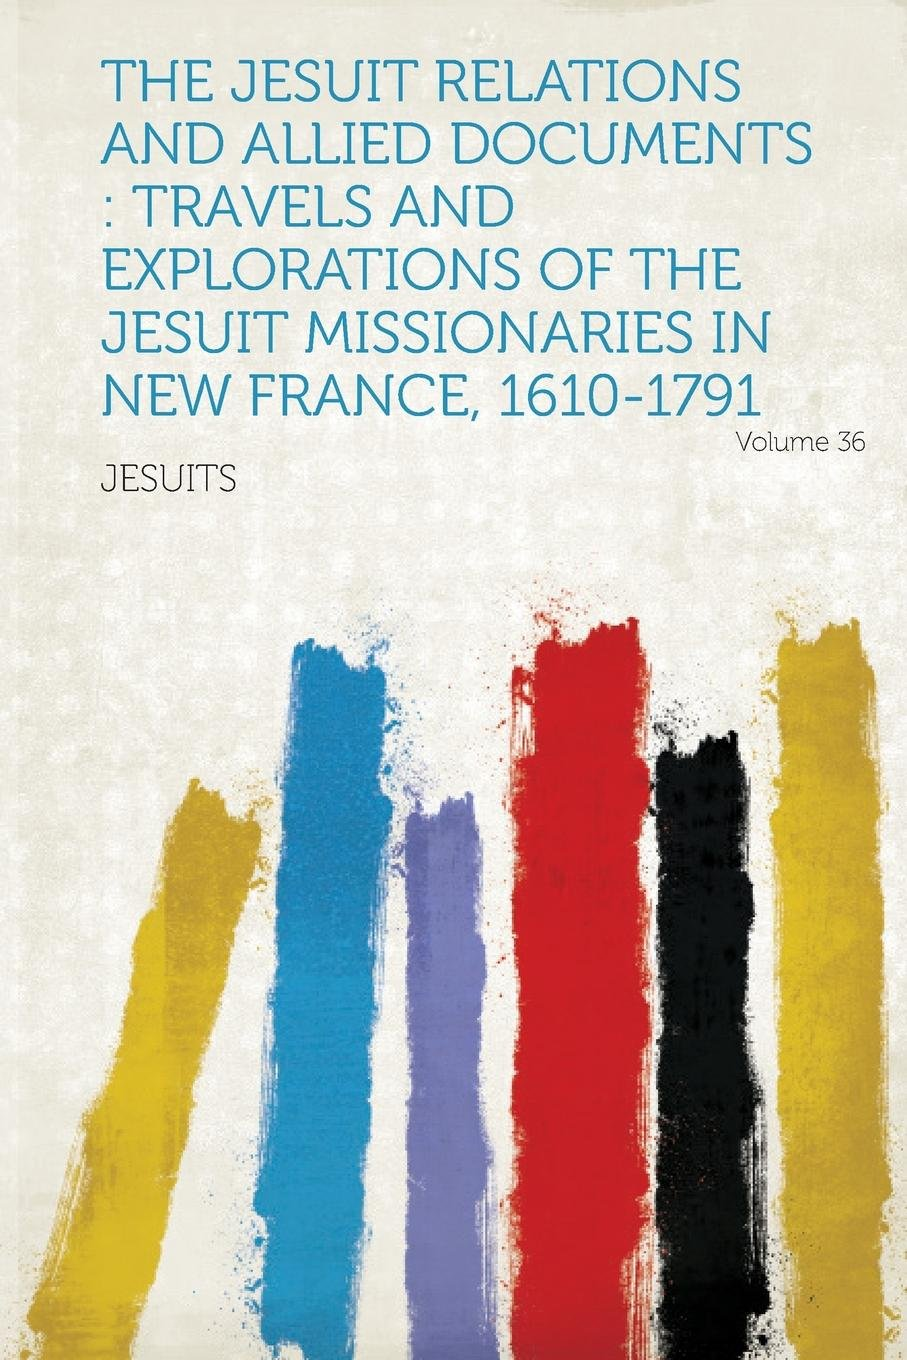 The Jesuit Relations and Allied Documents: Travels and Explorations of the Jesuit Missionaries in New France, 1610-1791 Volume 36 pdf